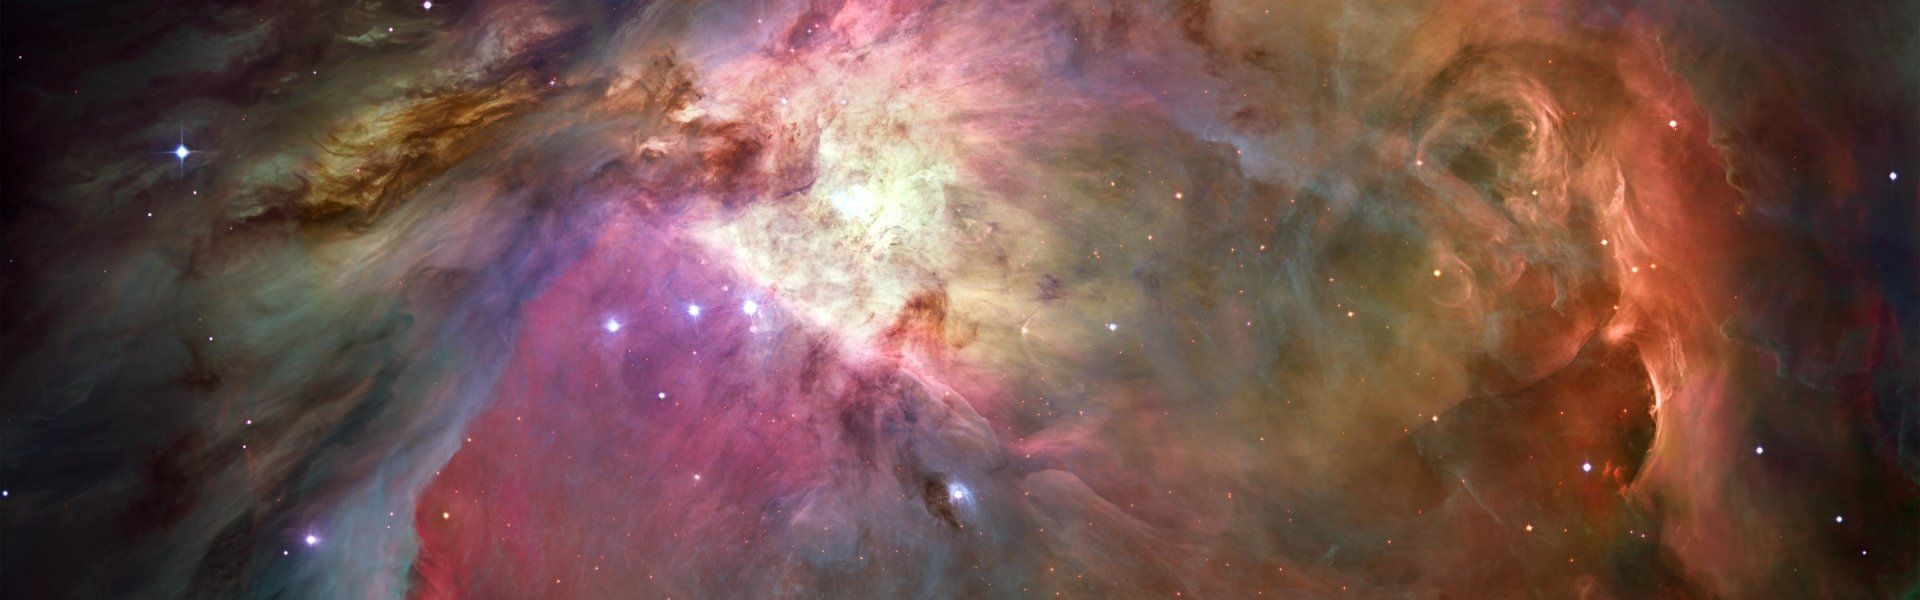 Sci Fi - Nebula  Space Orion Nebula Wallpaper